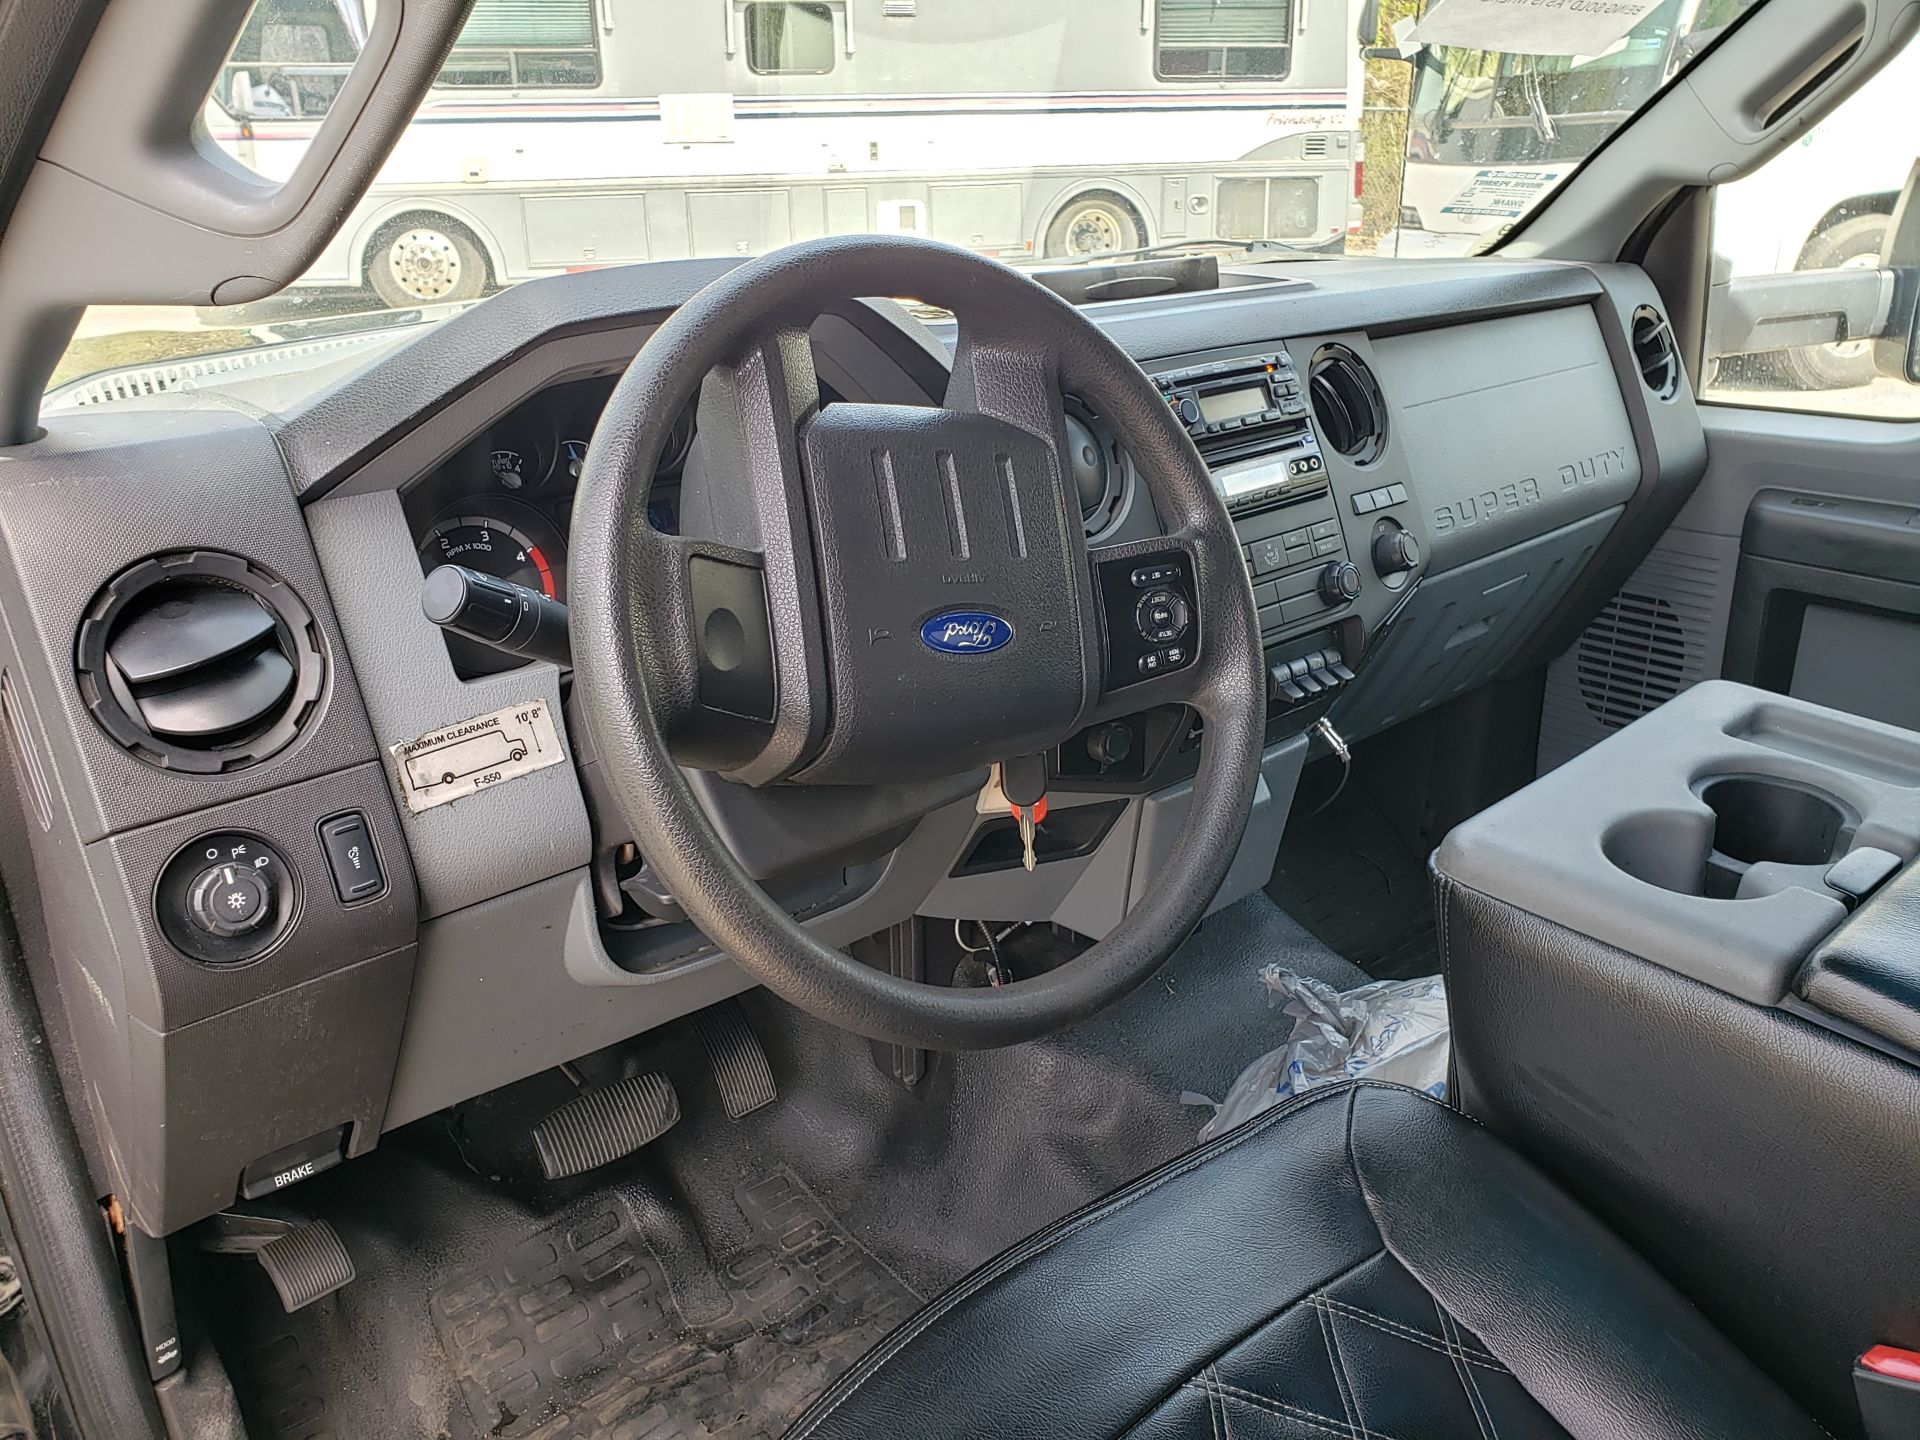 2013 Ford F550SD XL Grech Motors 33-Pass Shuttle Bus - Image 6 of 17